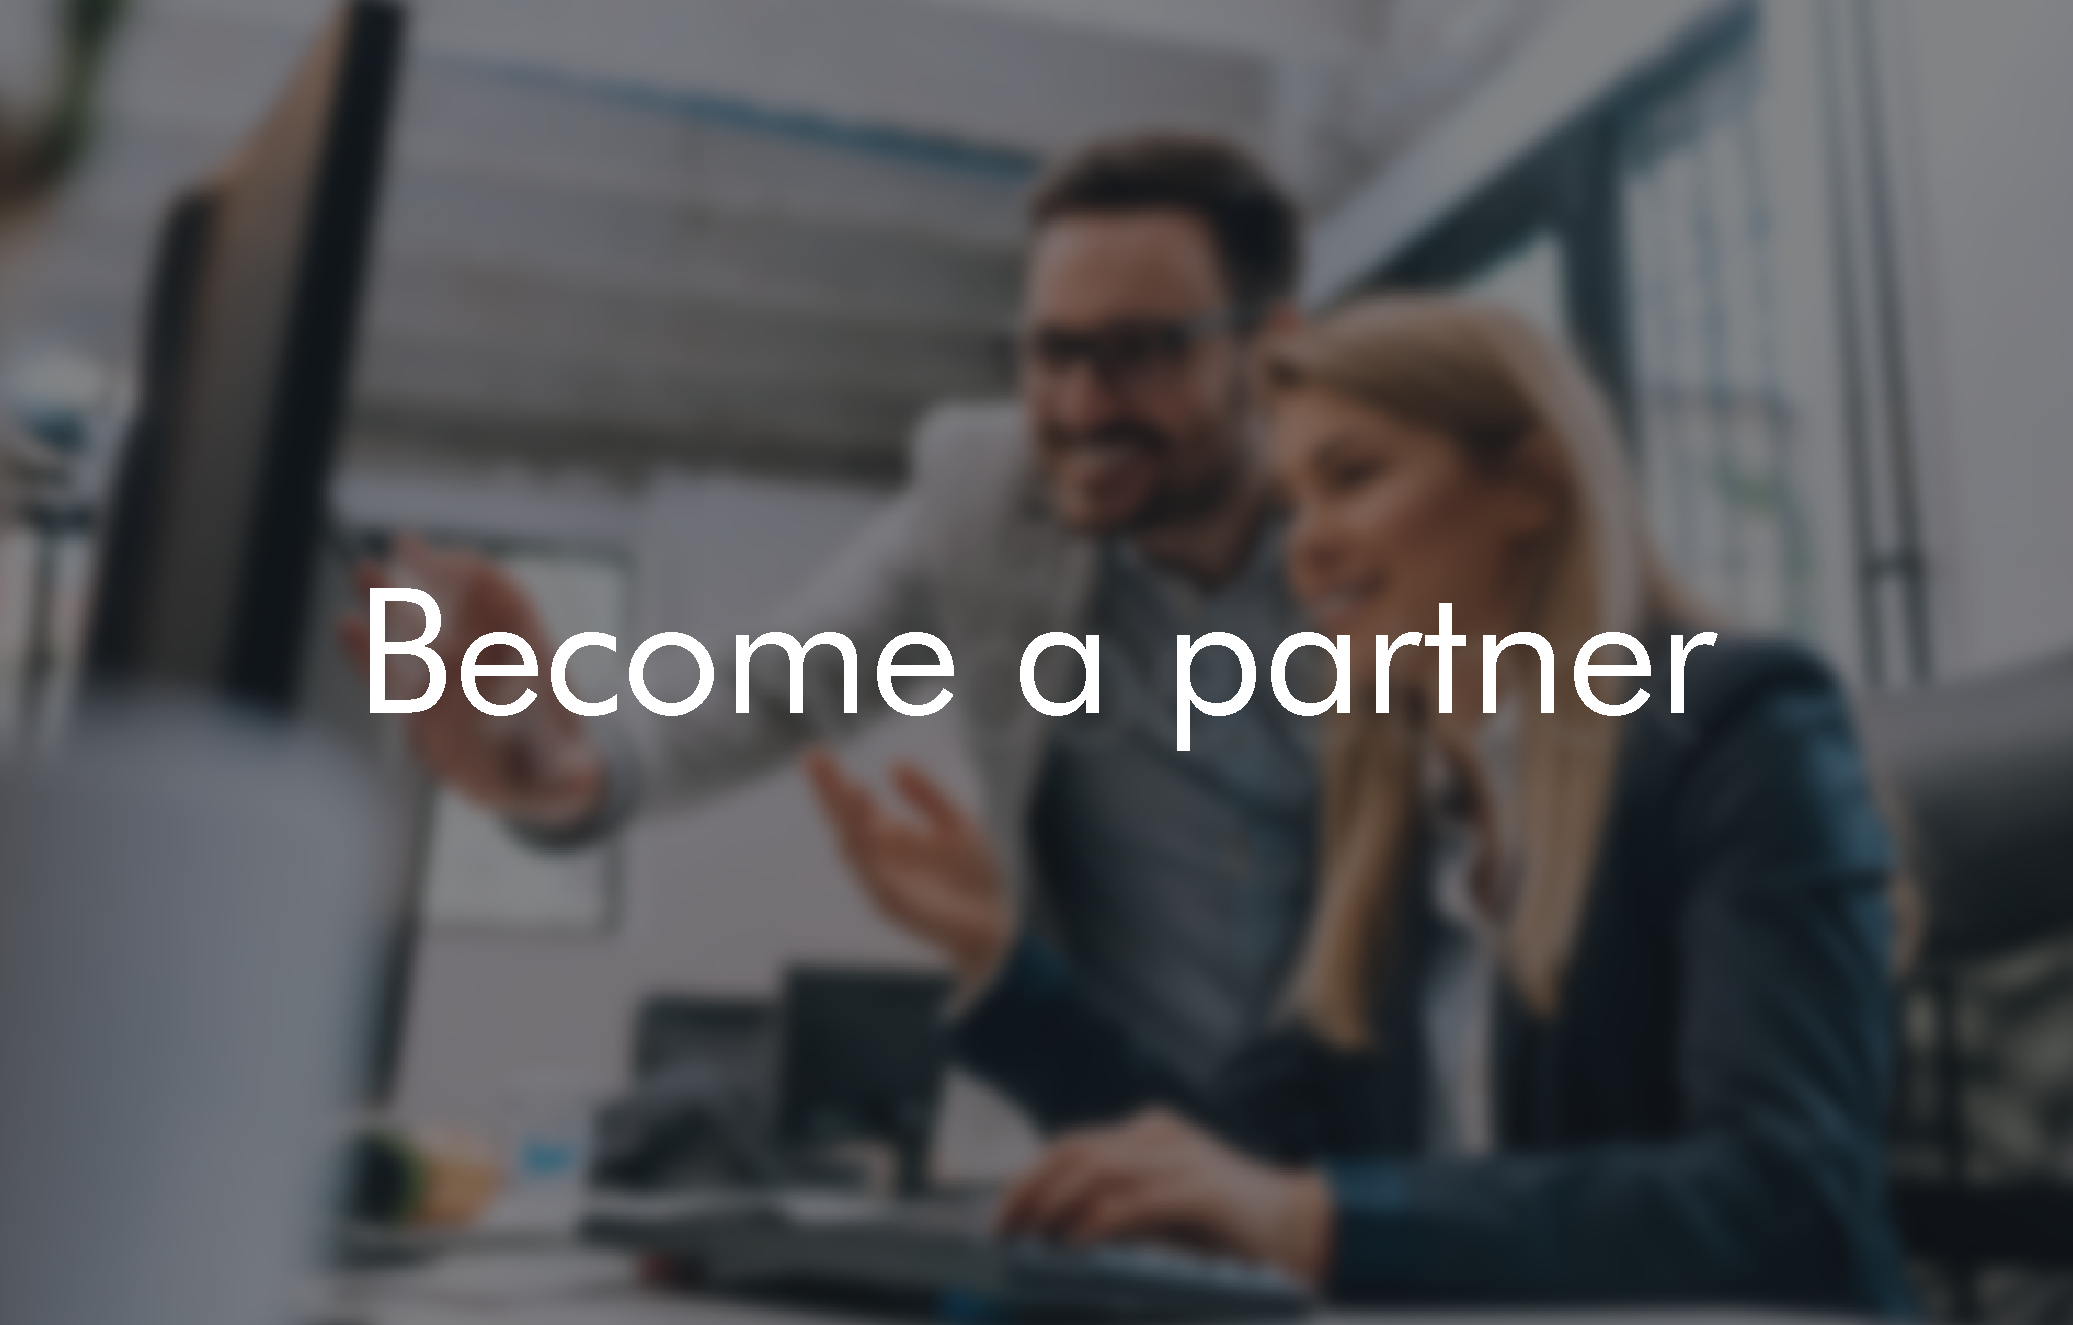 Become a partner-01-01-01.png